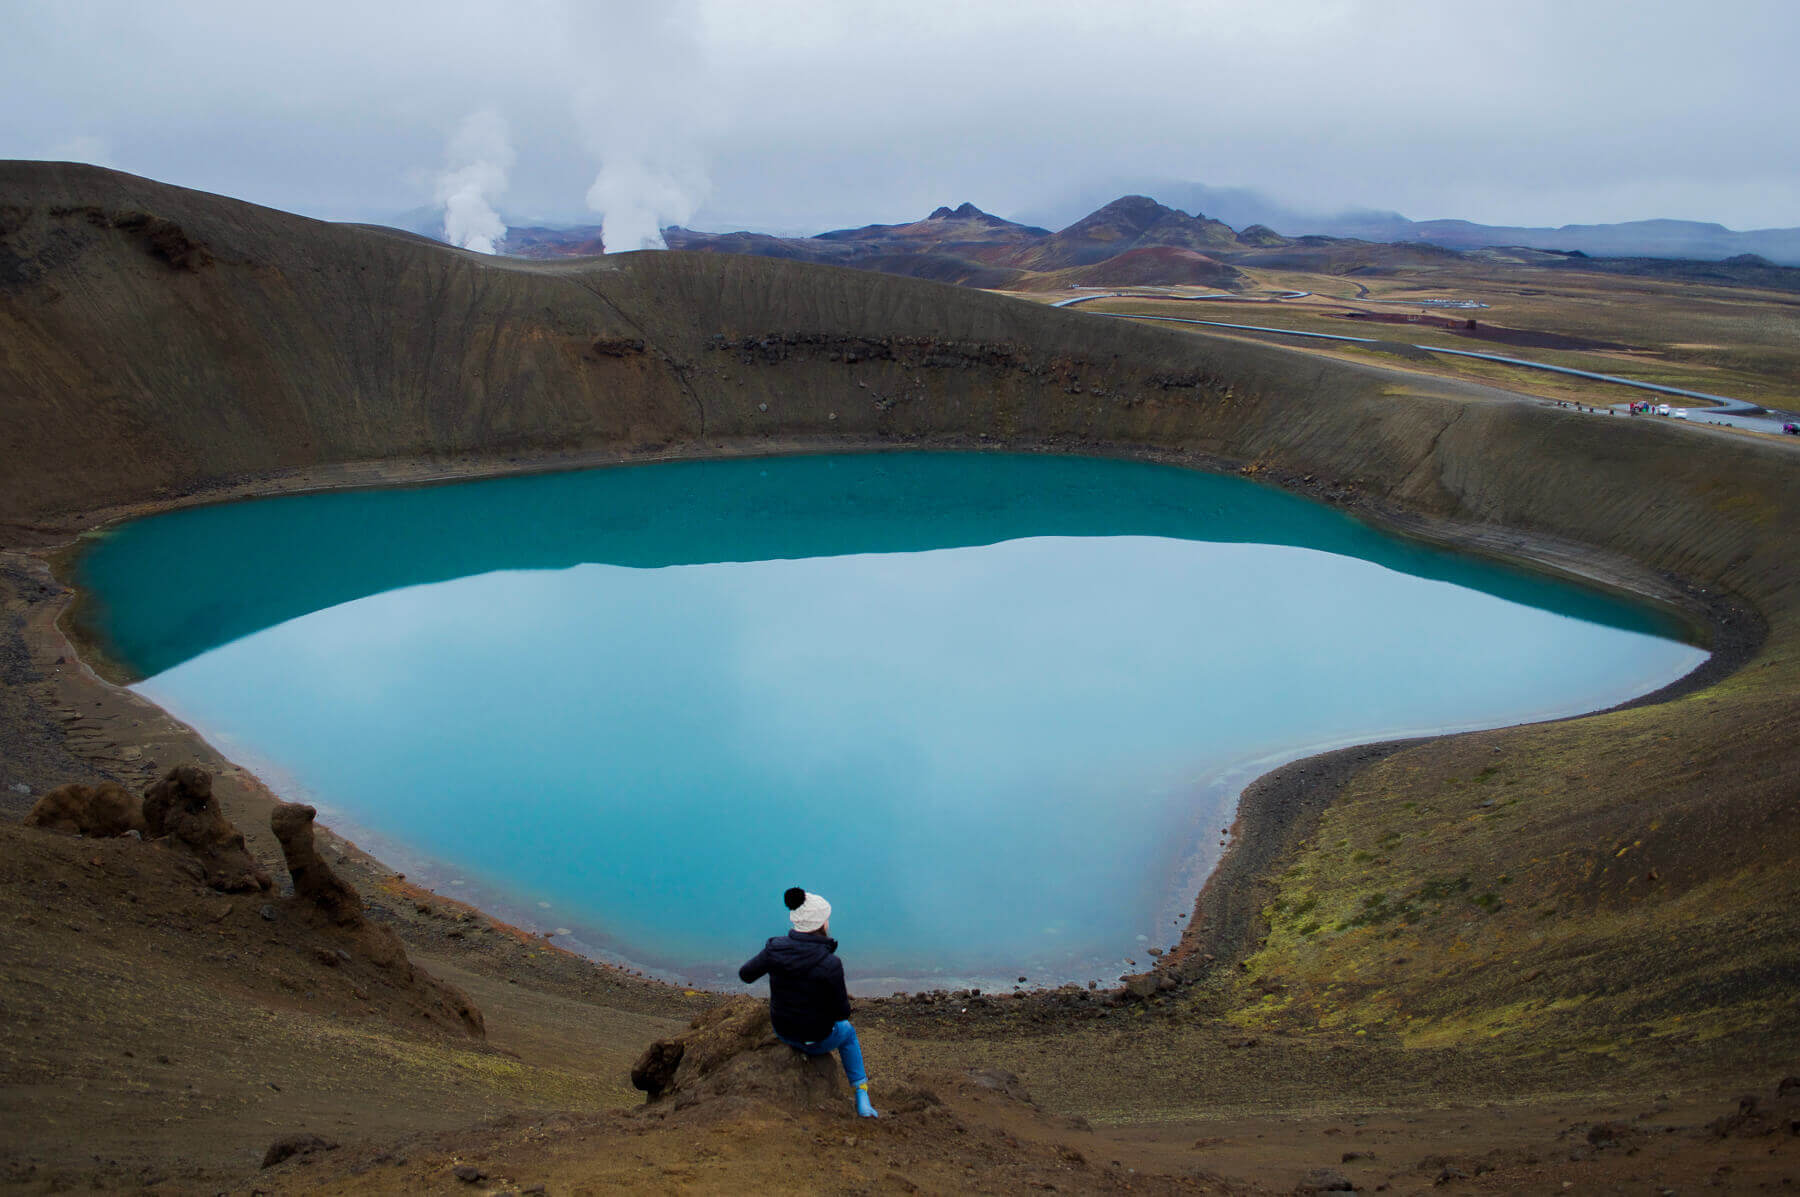 Girl overlooking a crater full of bright blue water